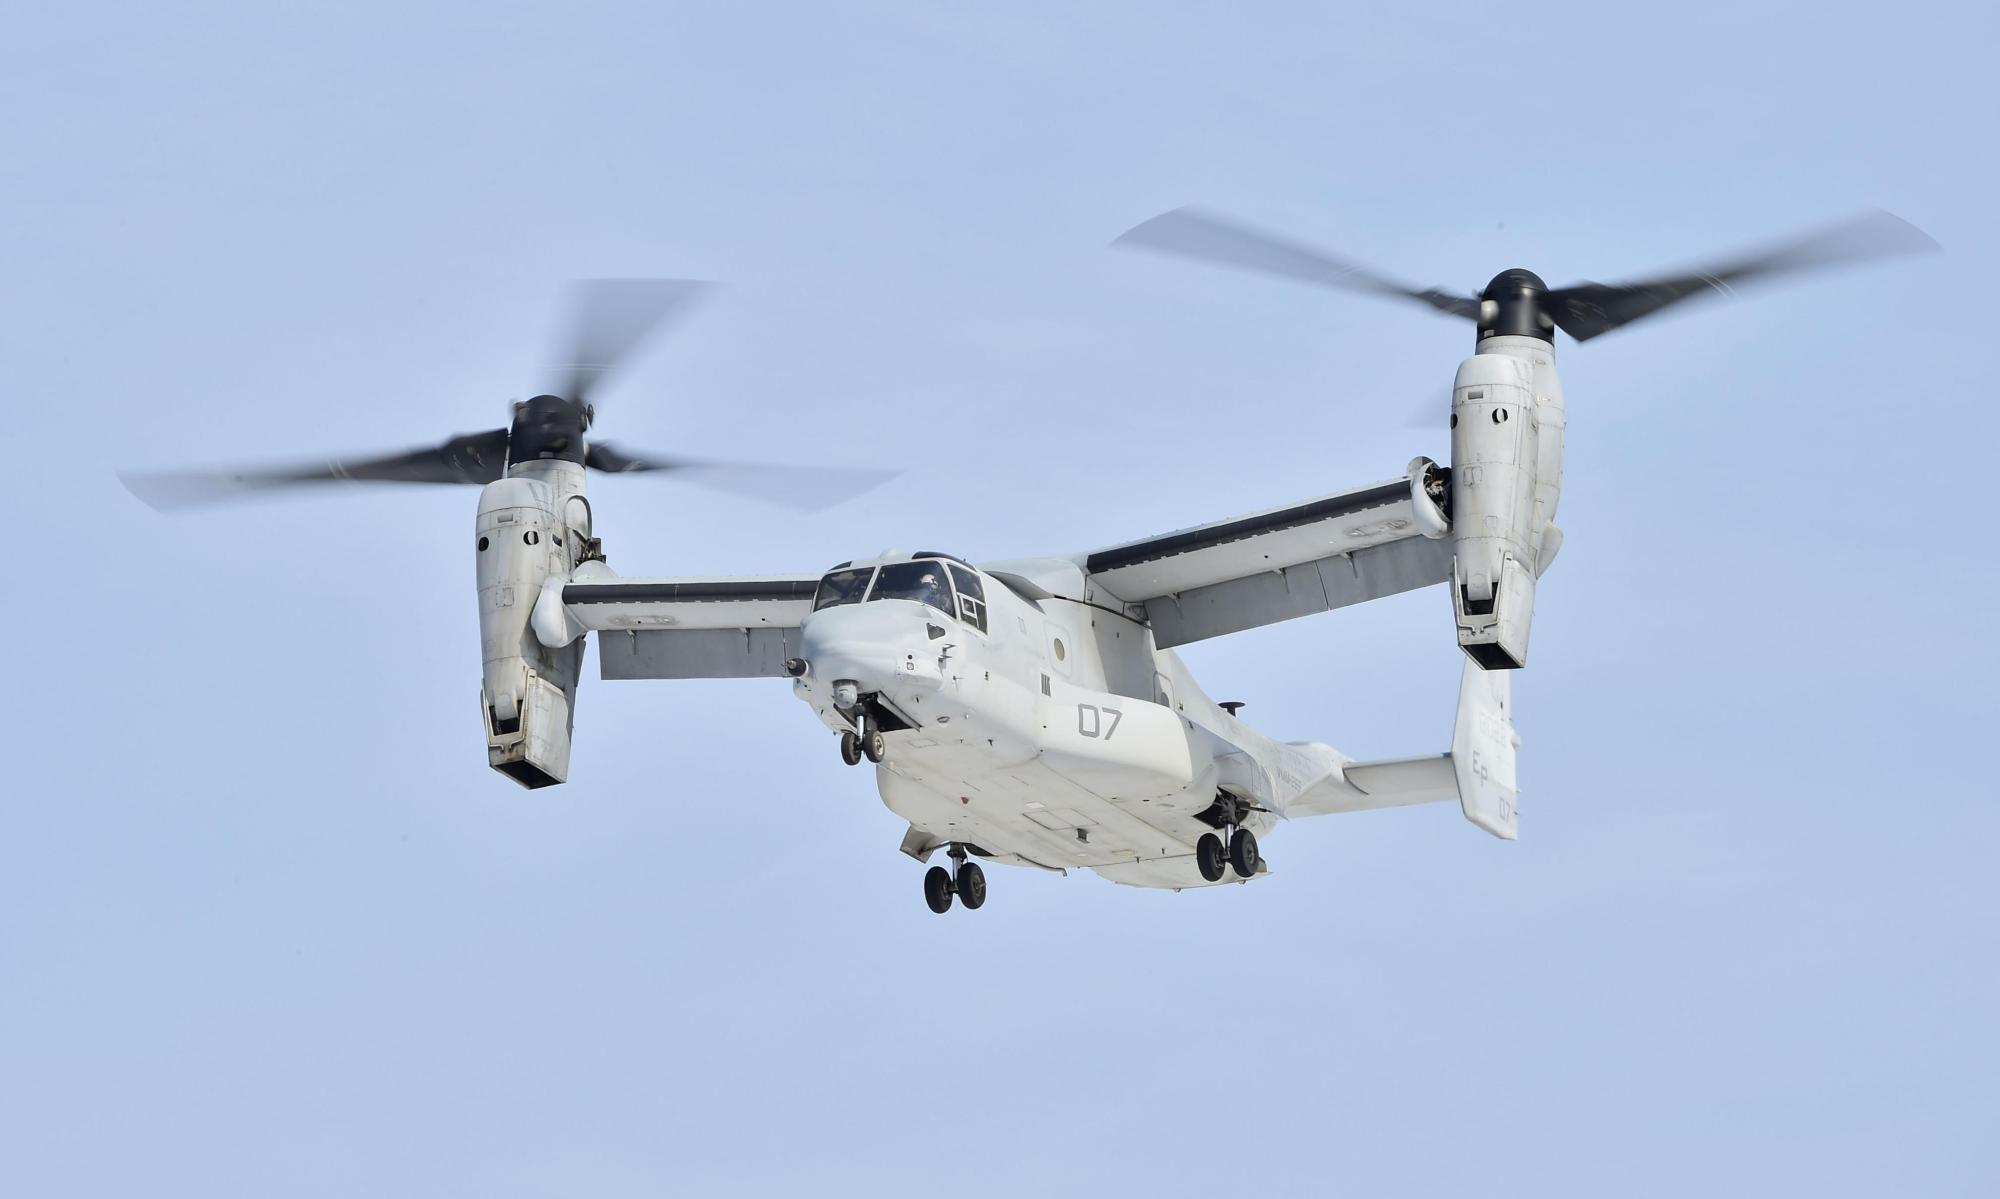 A U.S. Marine Corps Osprey aircraft participates in a joint training exercise with the Ground Self-Defense Force in Niigata in March. | KYODO